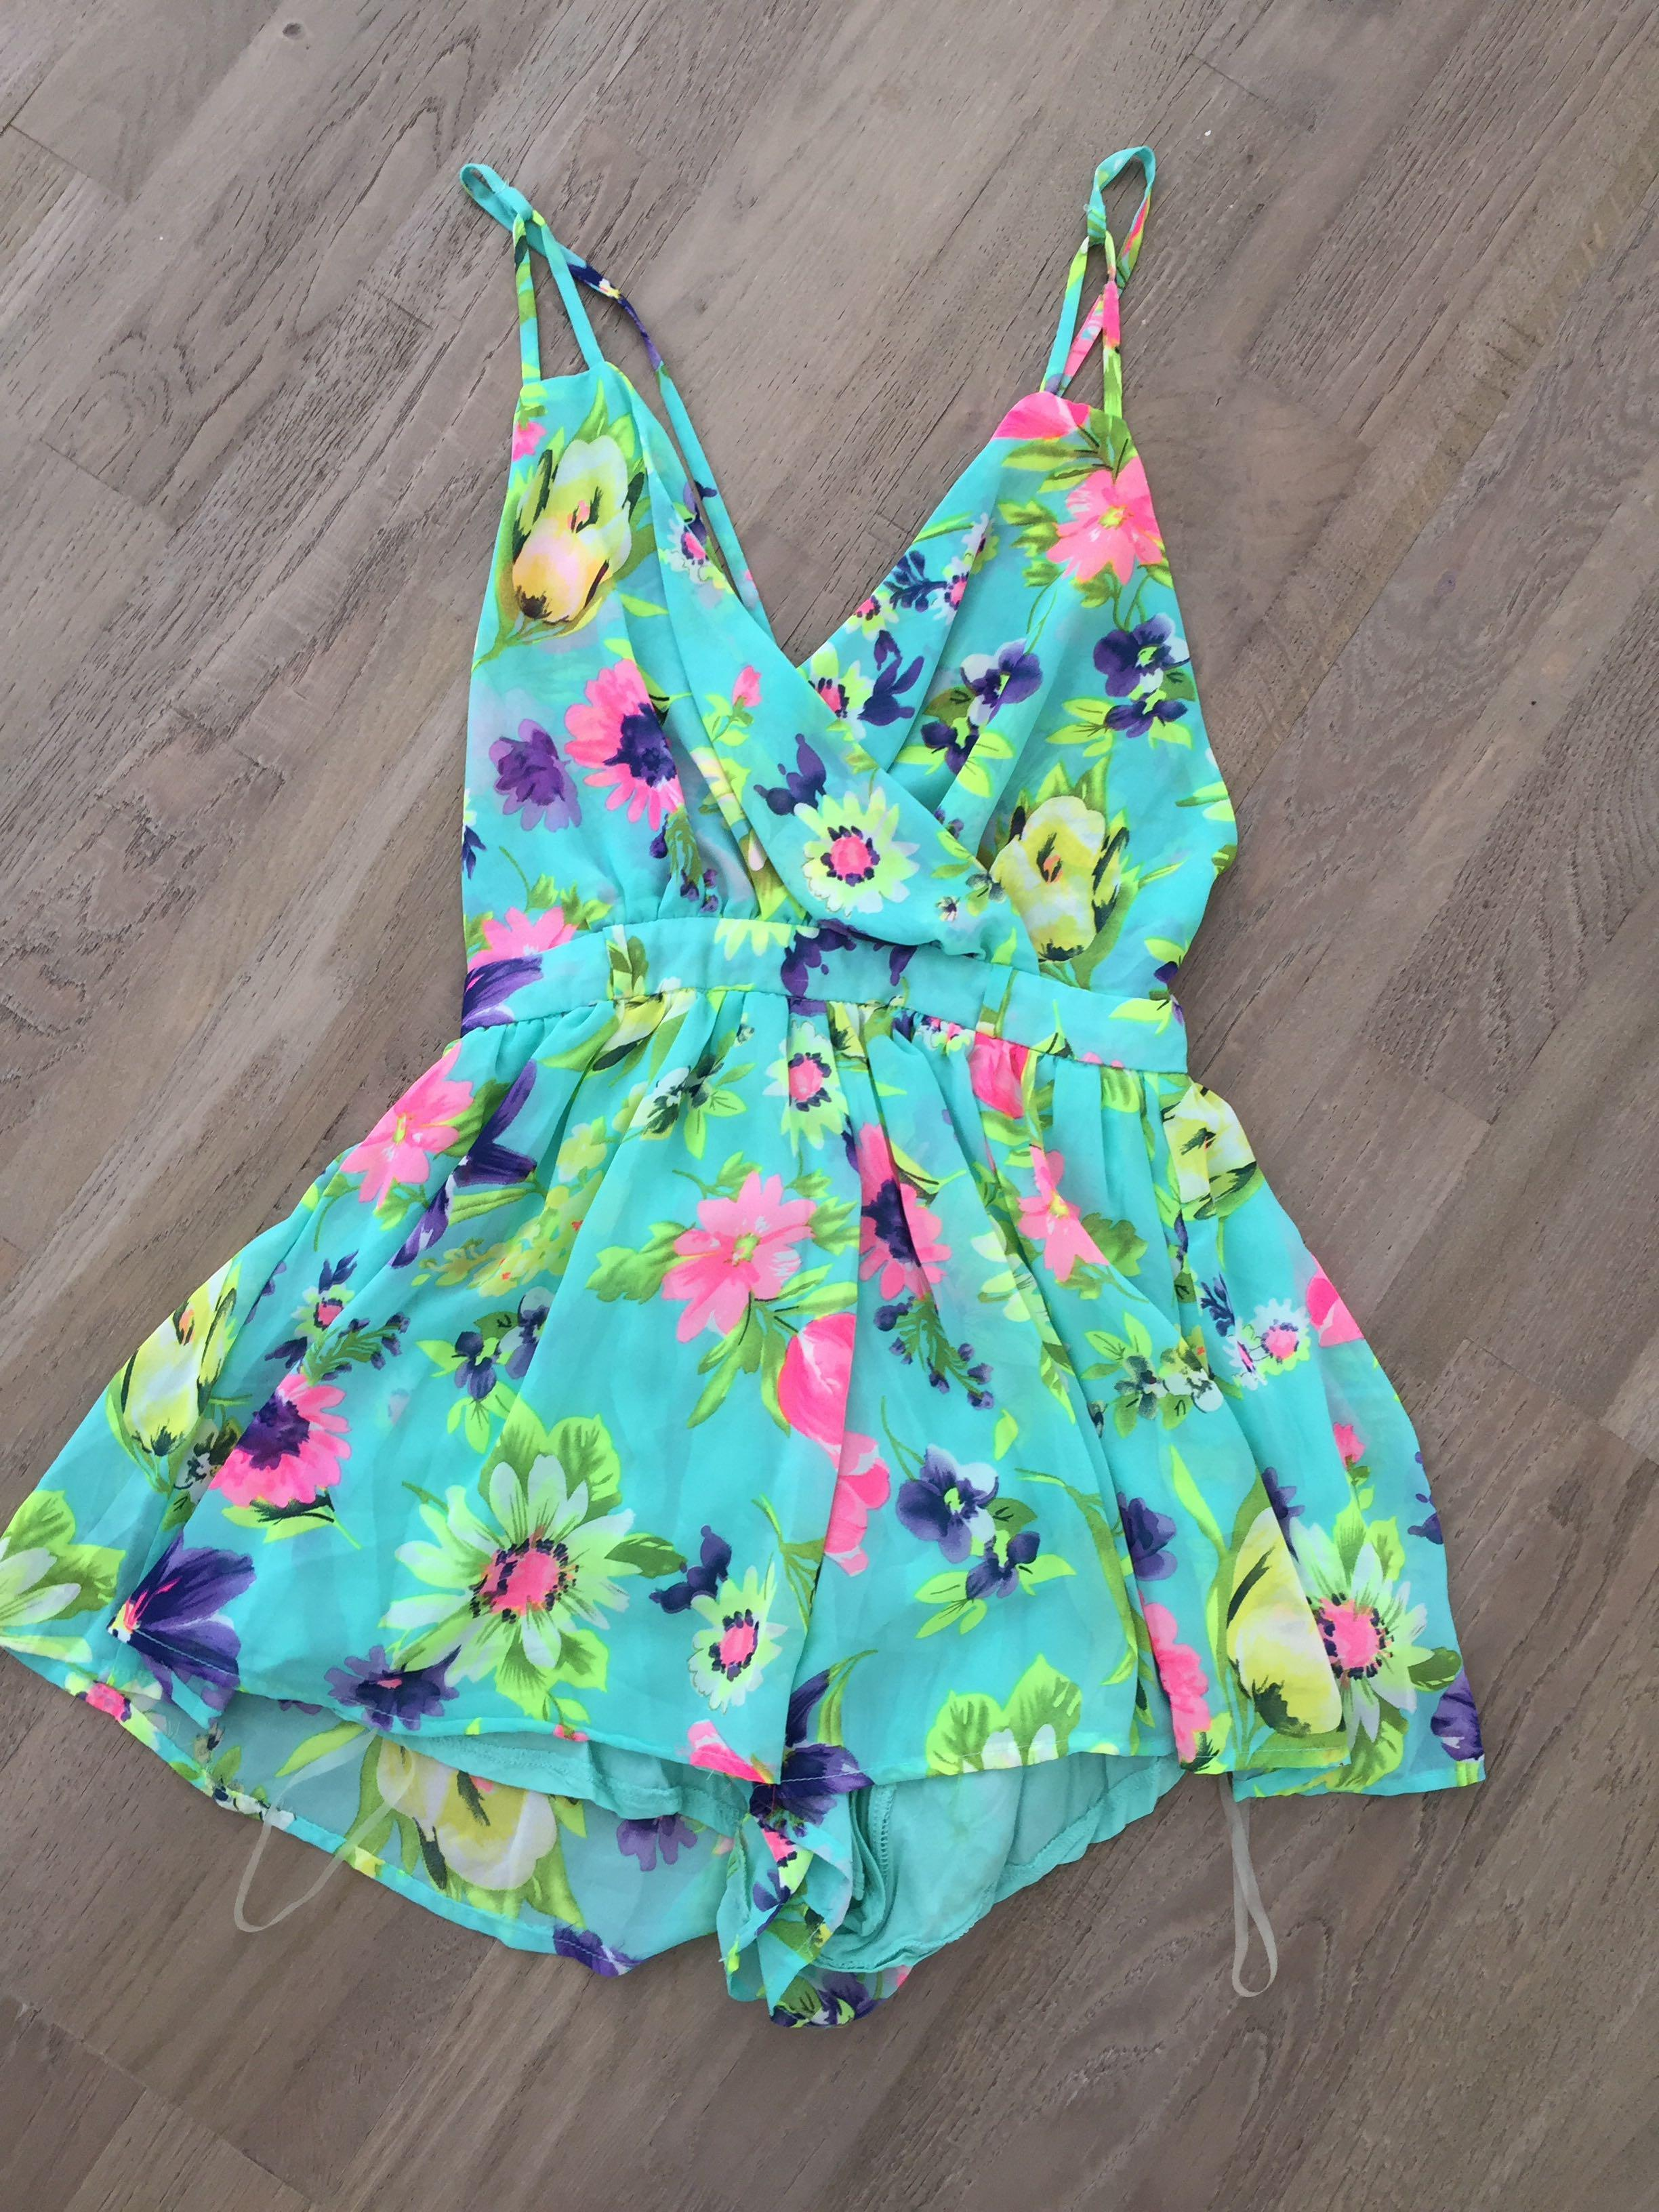 Size 6 colourful playsuit with Criss cross back. Excellent condition